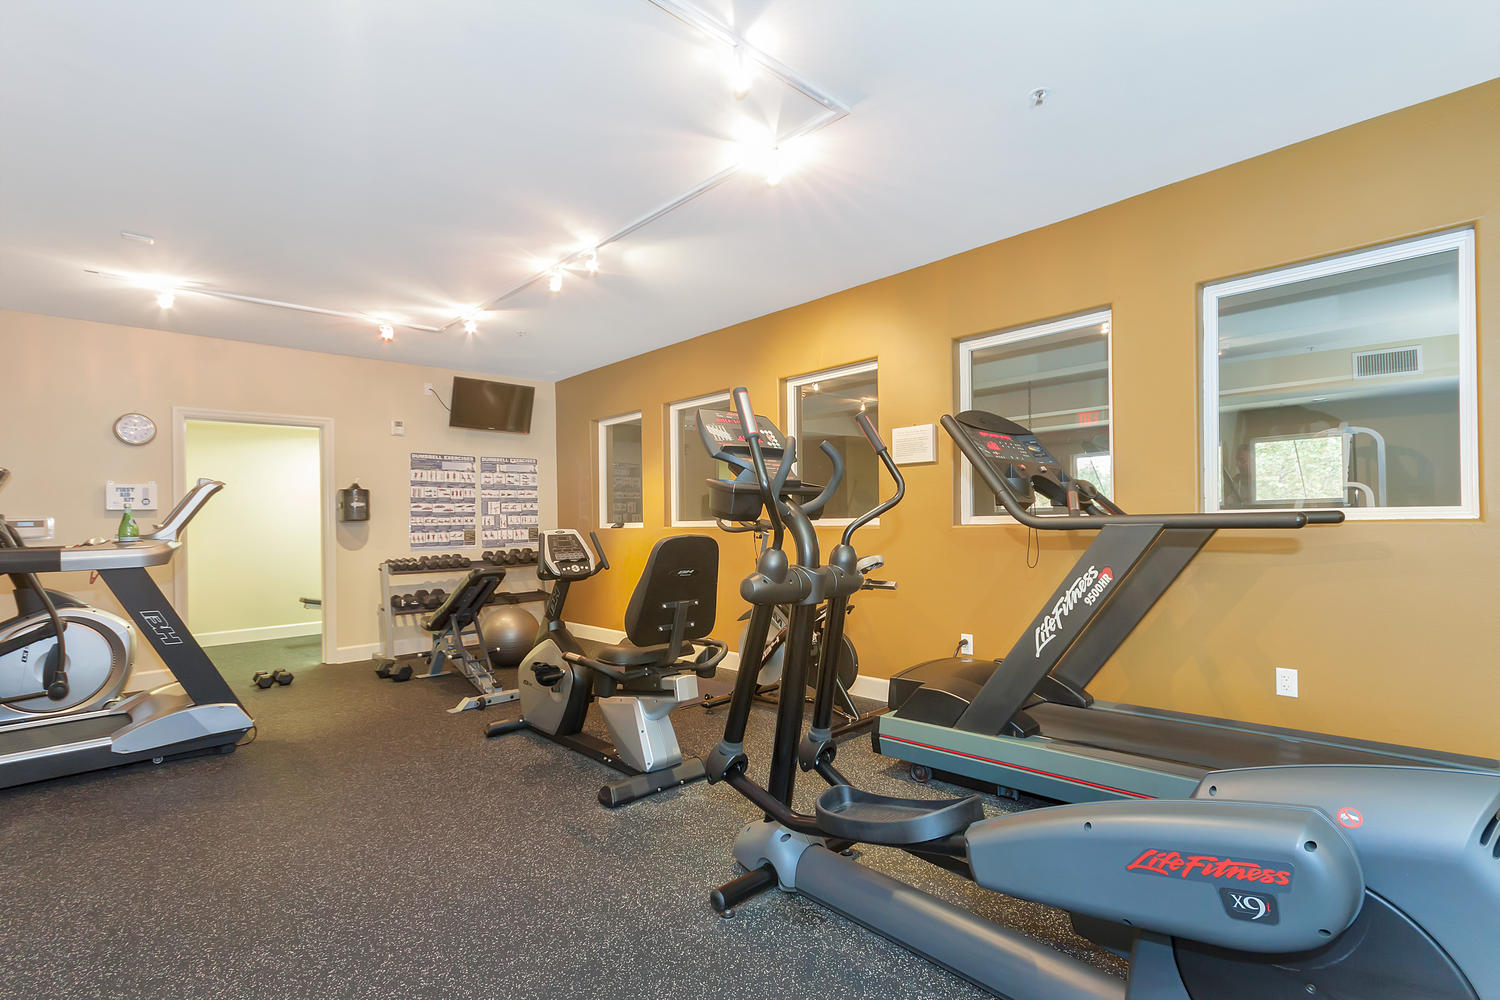 1800 Alma Ave Unit 203 Walnut-large-031-29-Gym 1-1500x1000-72dpi.jpg